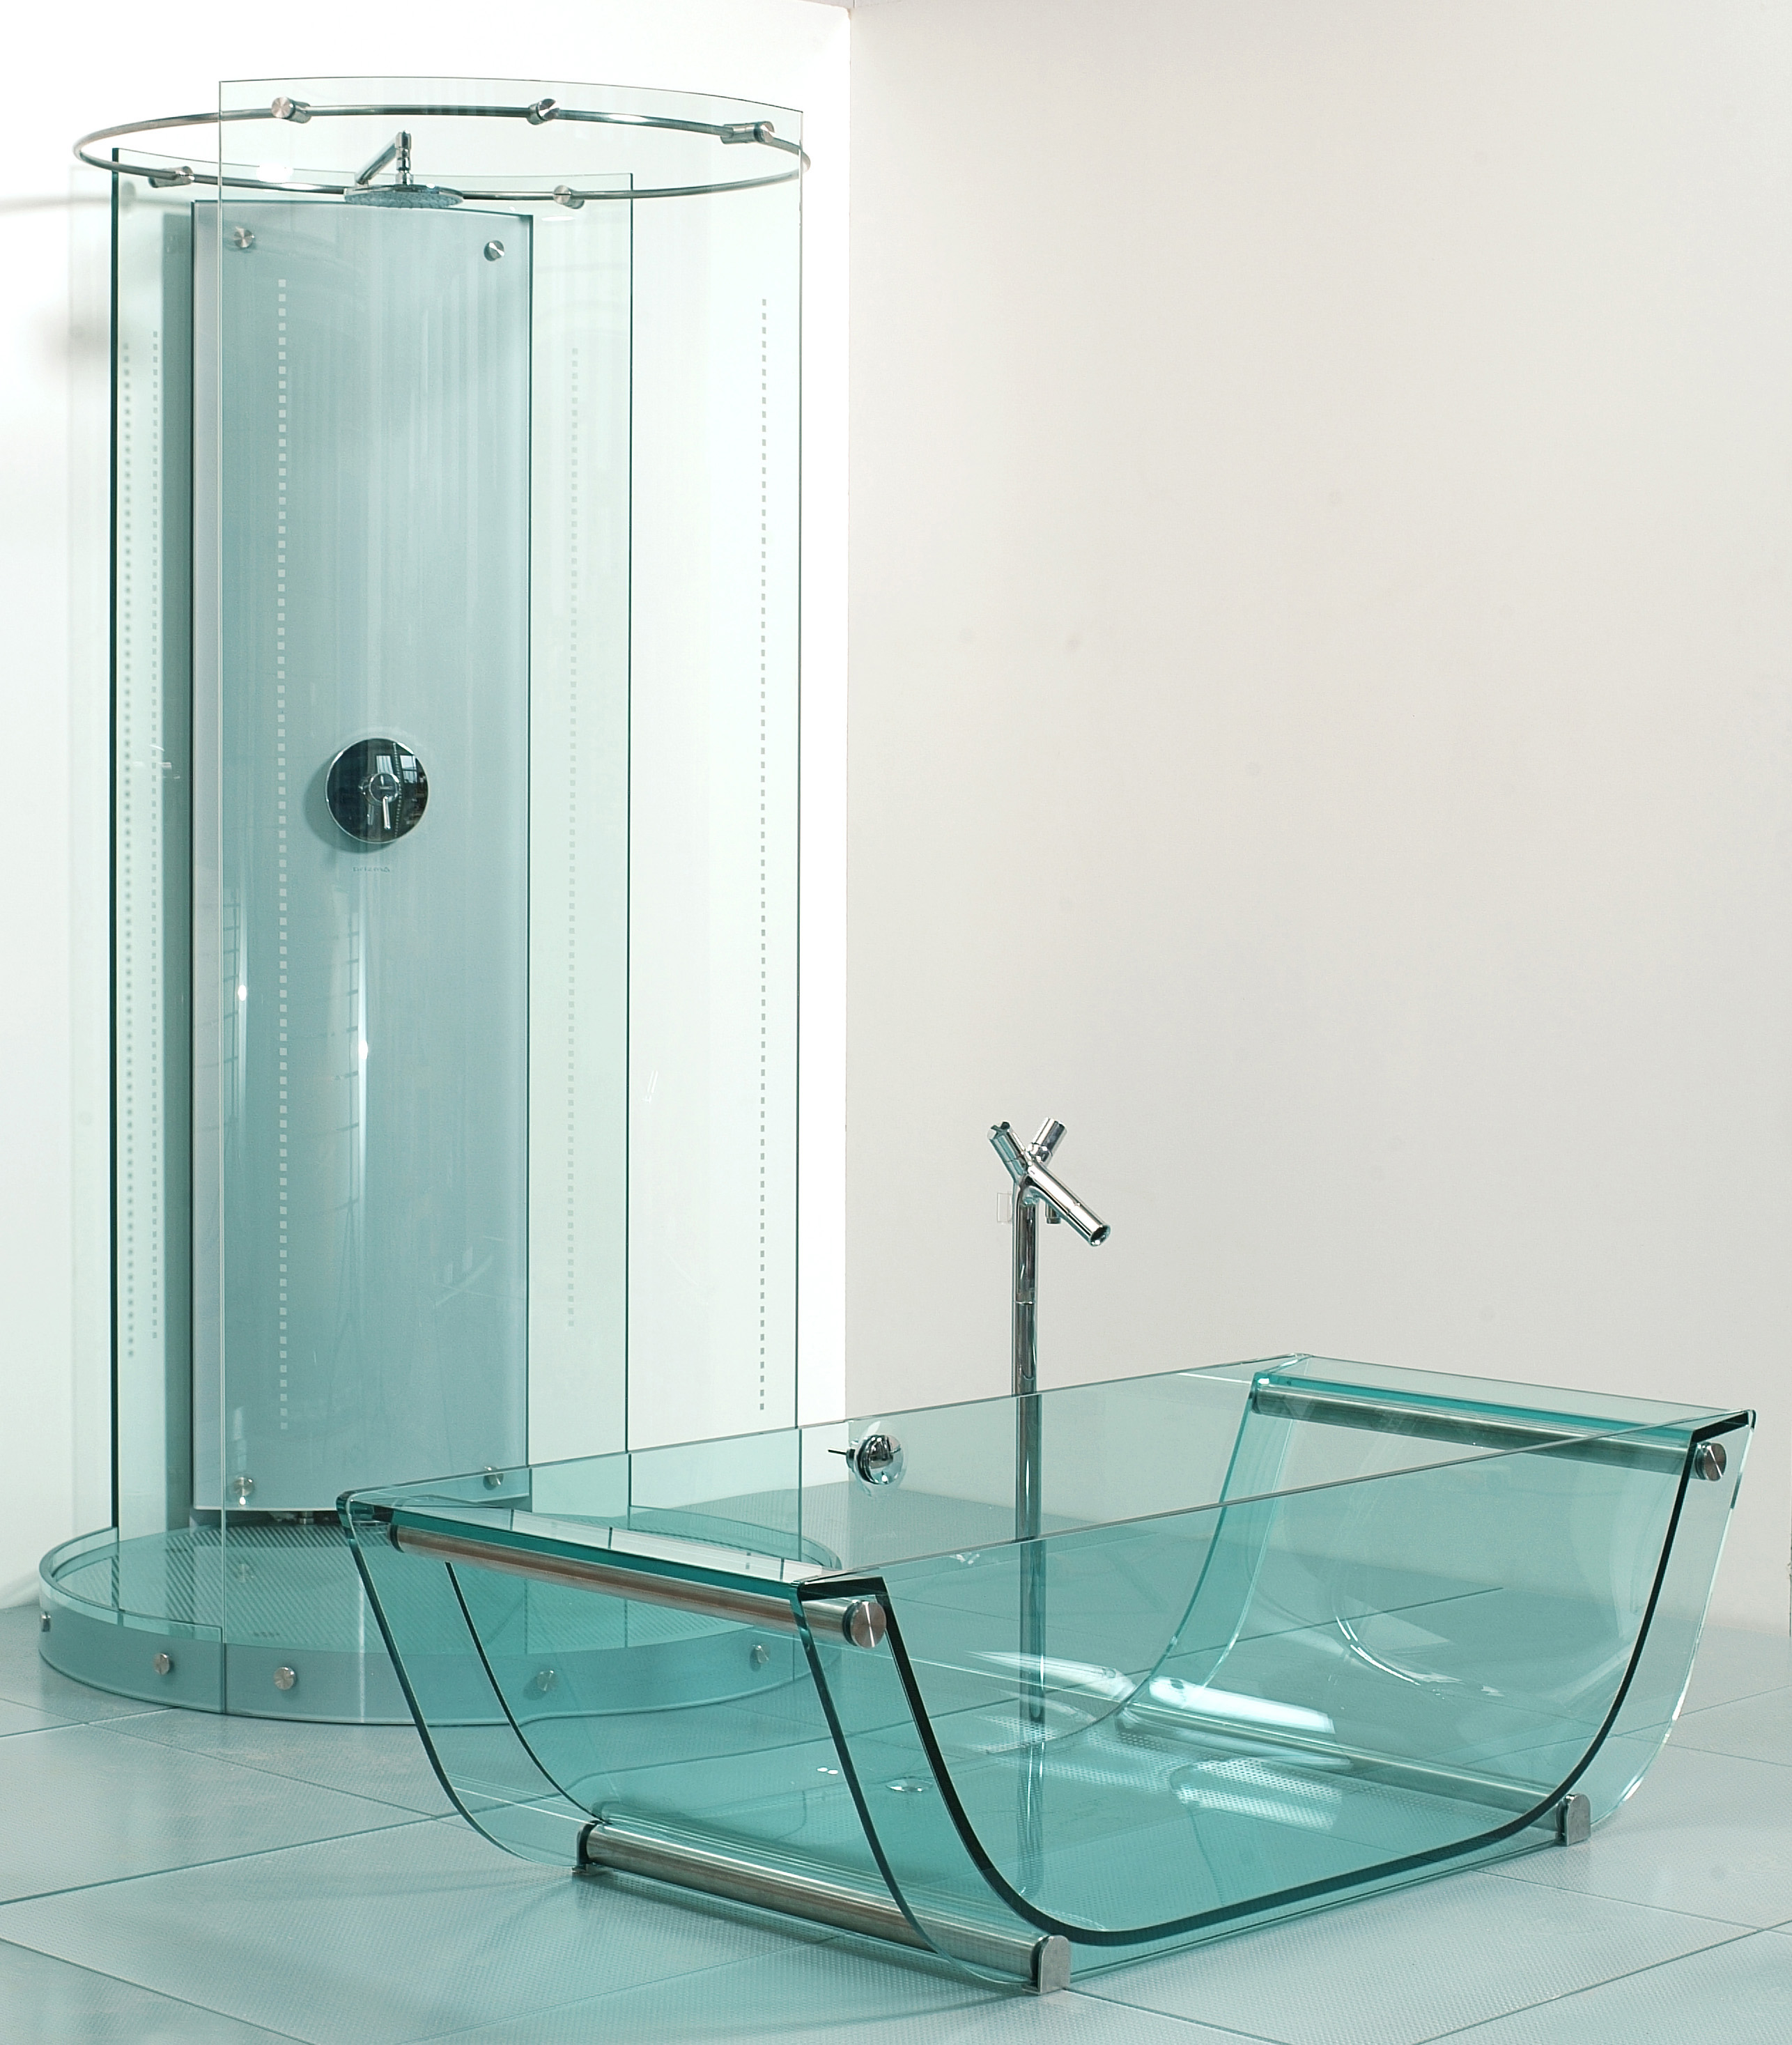 Glas Wc Prizmastudio Prizma Presents A Complete Glass Bathroom